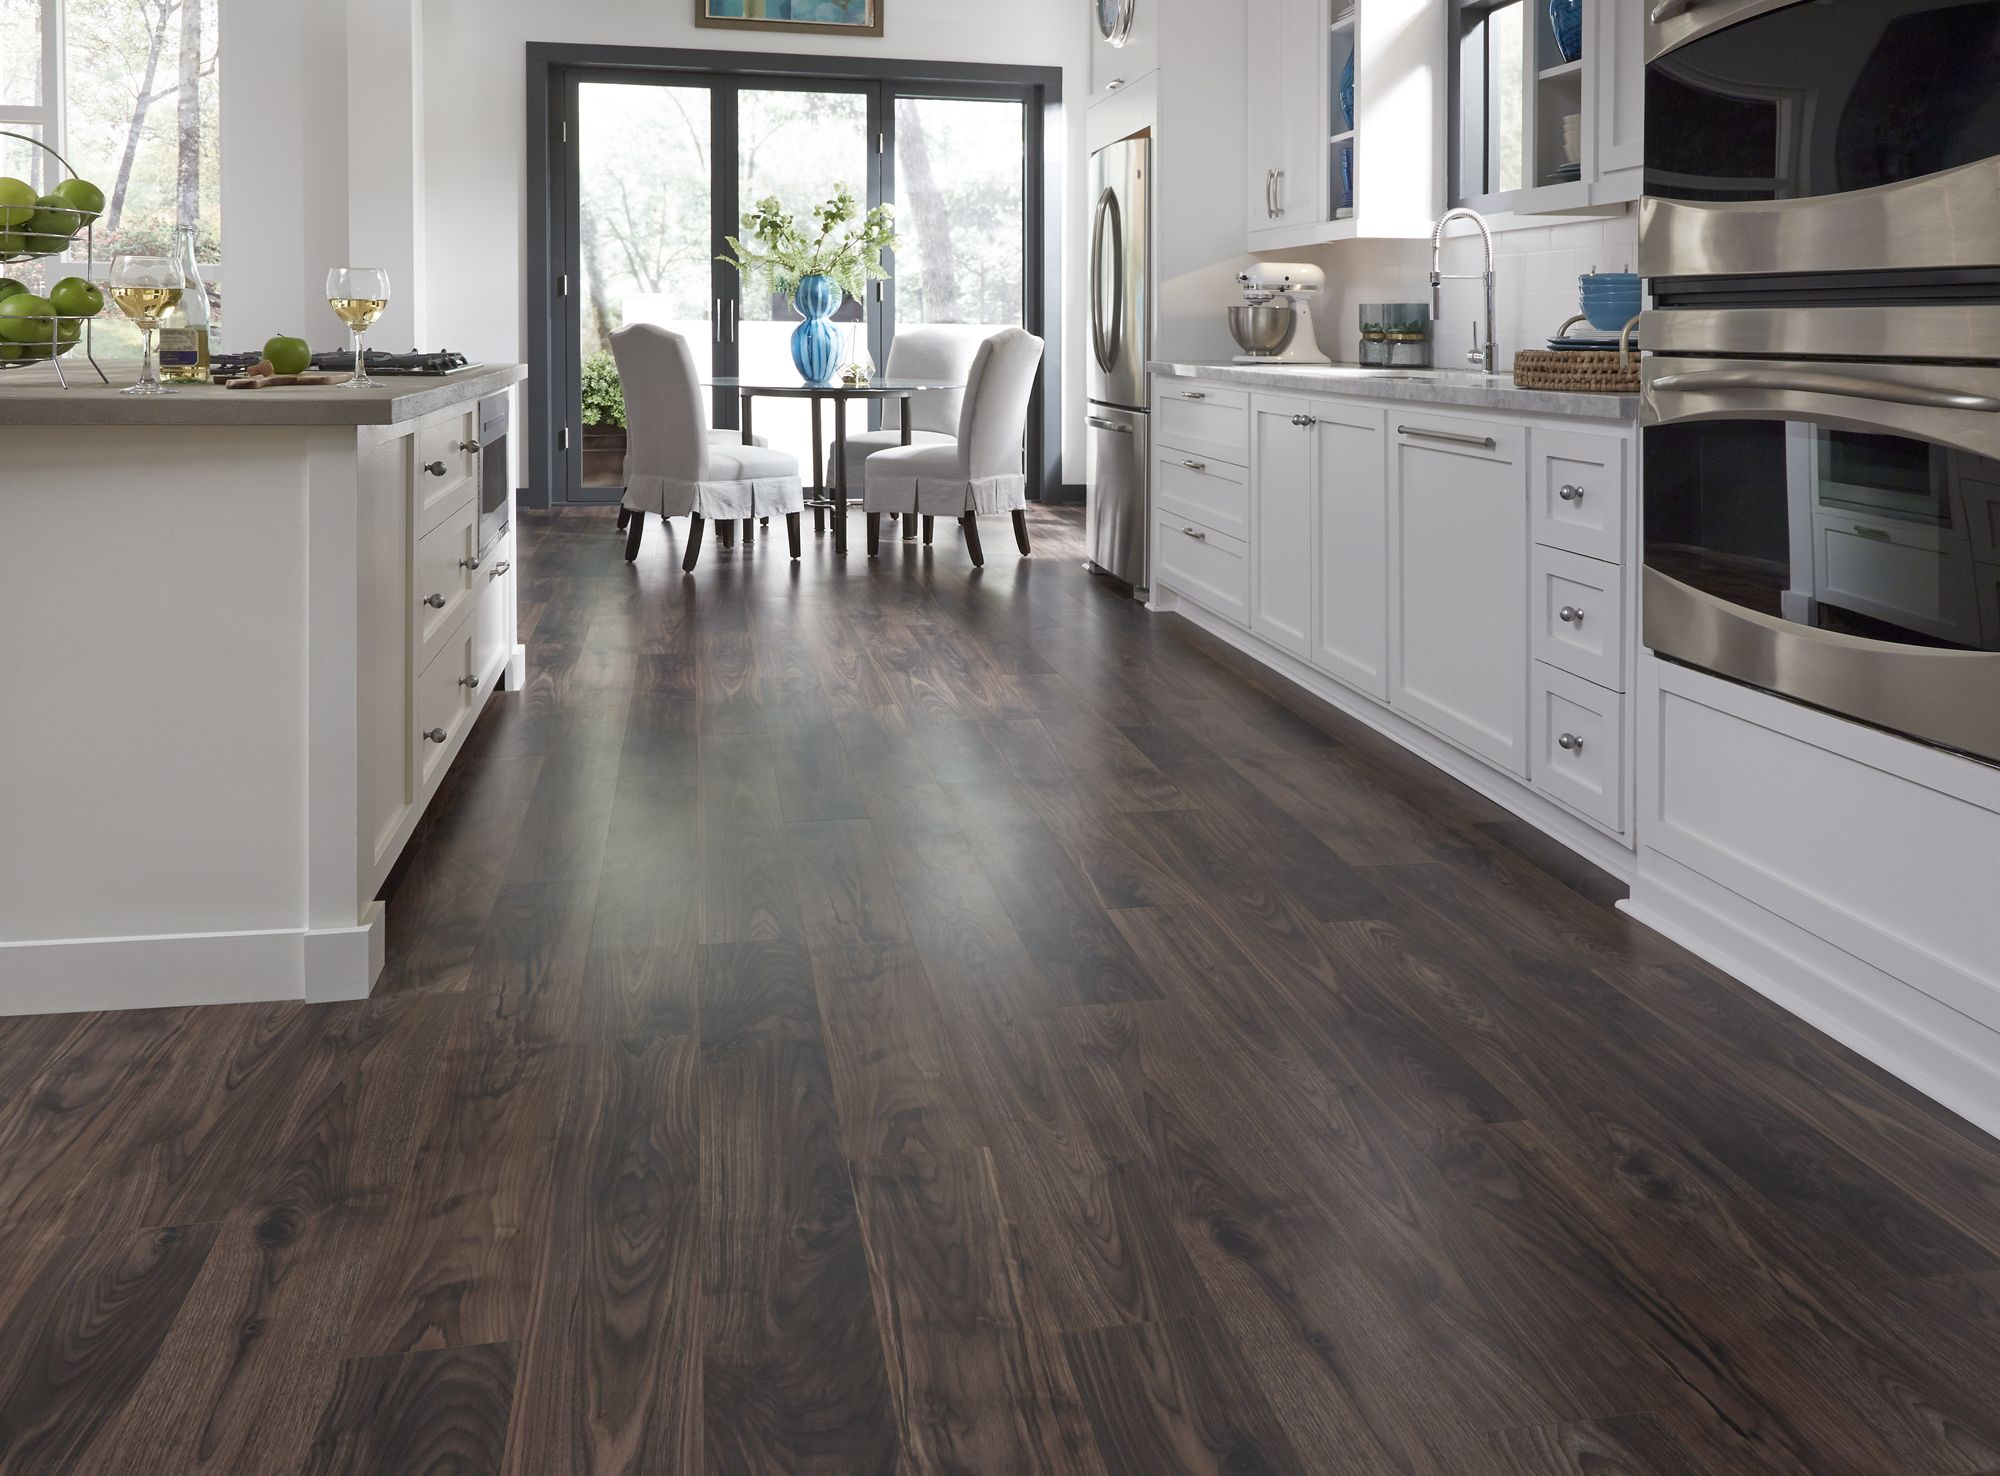 Waterproof kid proof pet proof felsen click ceramic plank is the wood look tile that has no grout lines click ceramic plank ccp by lumber liquidators it is the perfect blend of beauty and longevity my floors post dailygadgetfo Choice Image